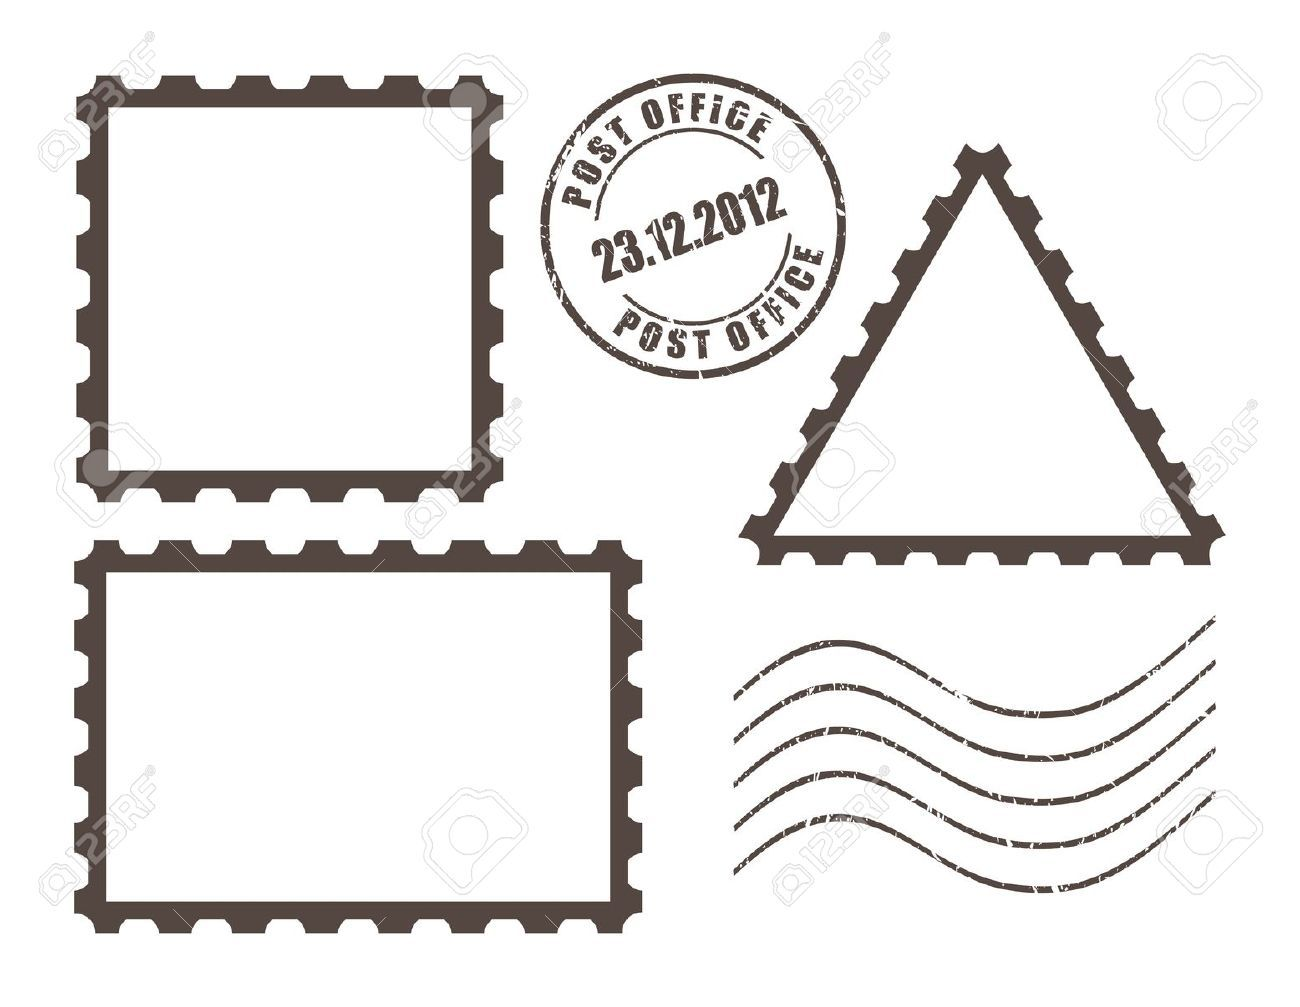 postcard clipart stamp outline #387 | Post stamp, Stamp ...